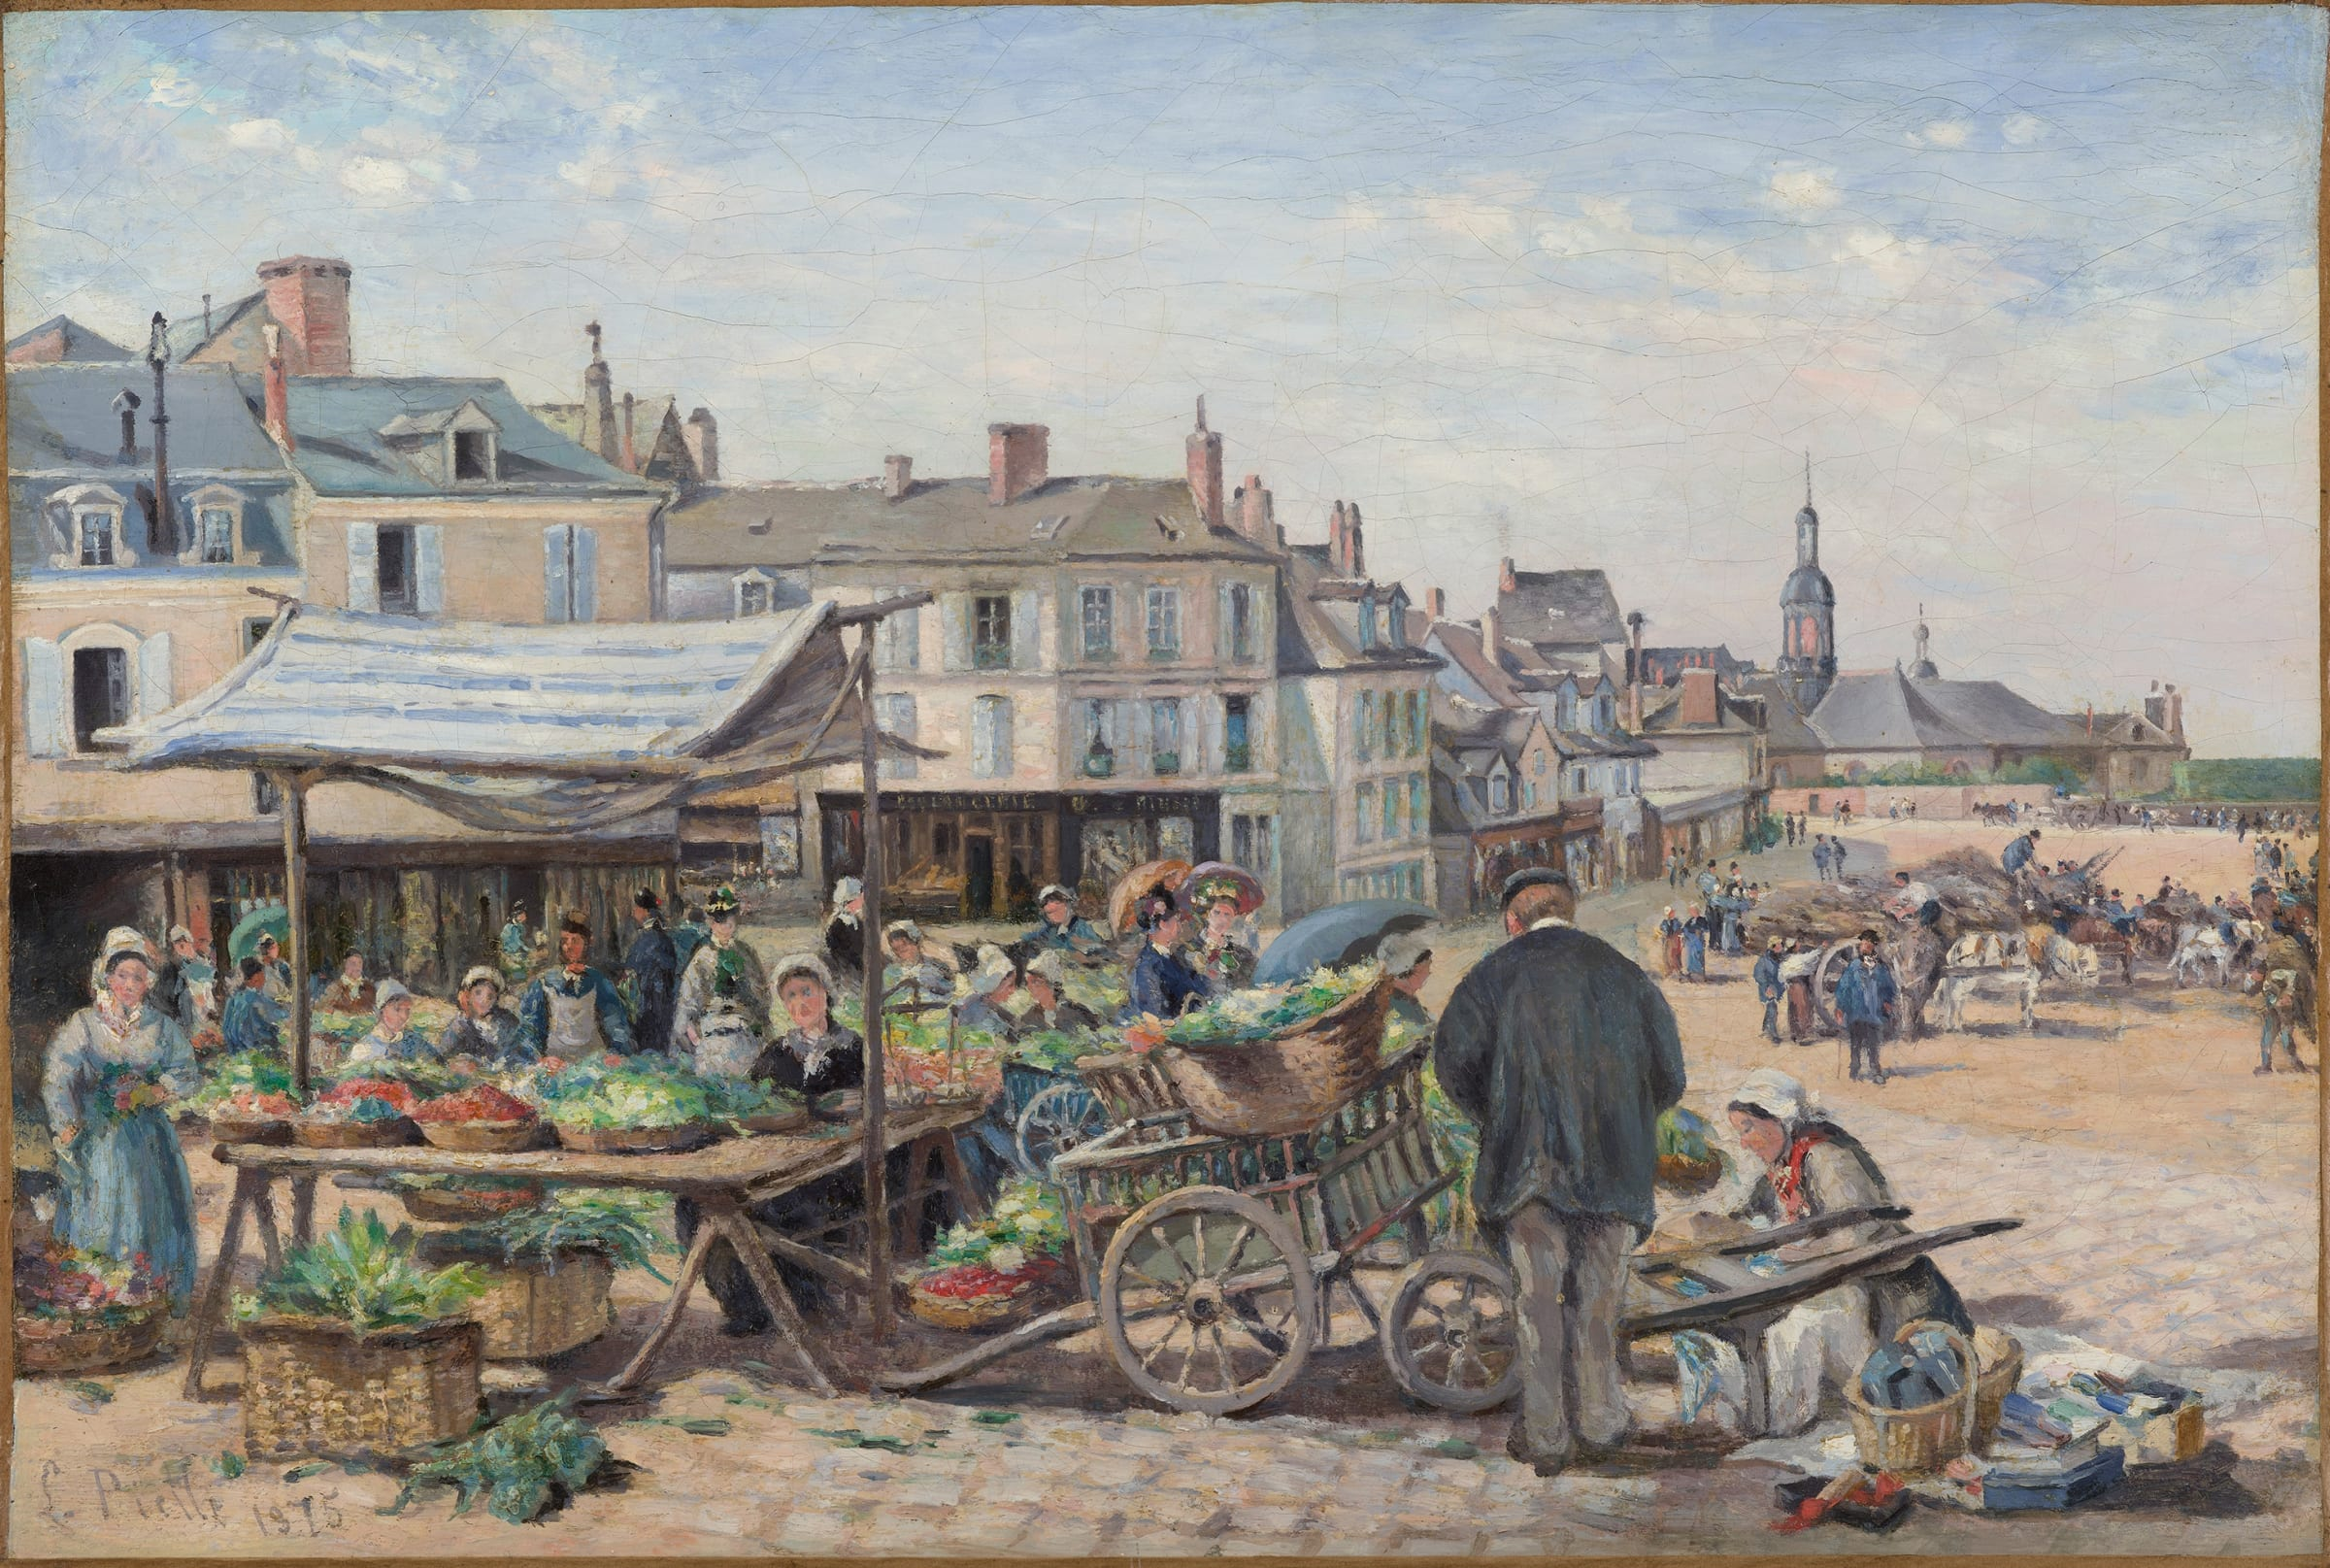 "<span class=""link fancybox-details-link""><a href=""/artists/71-ludovic-piette/works/9458-ludovic-piette-le-marche-le-mans-1875/"">View Detail Page</a></span><div class=""artist""><span class=""artist""><strong>Ludovic Piette</strong></span></div>